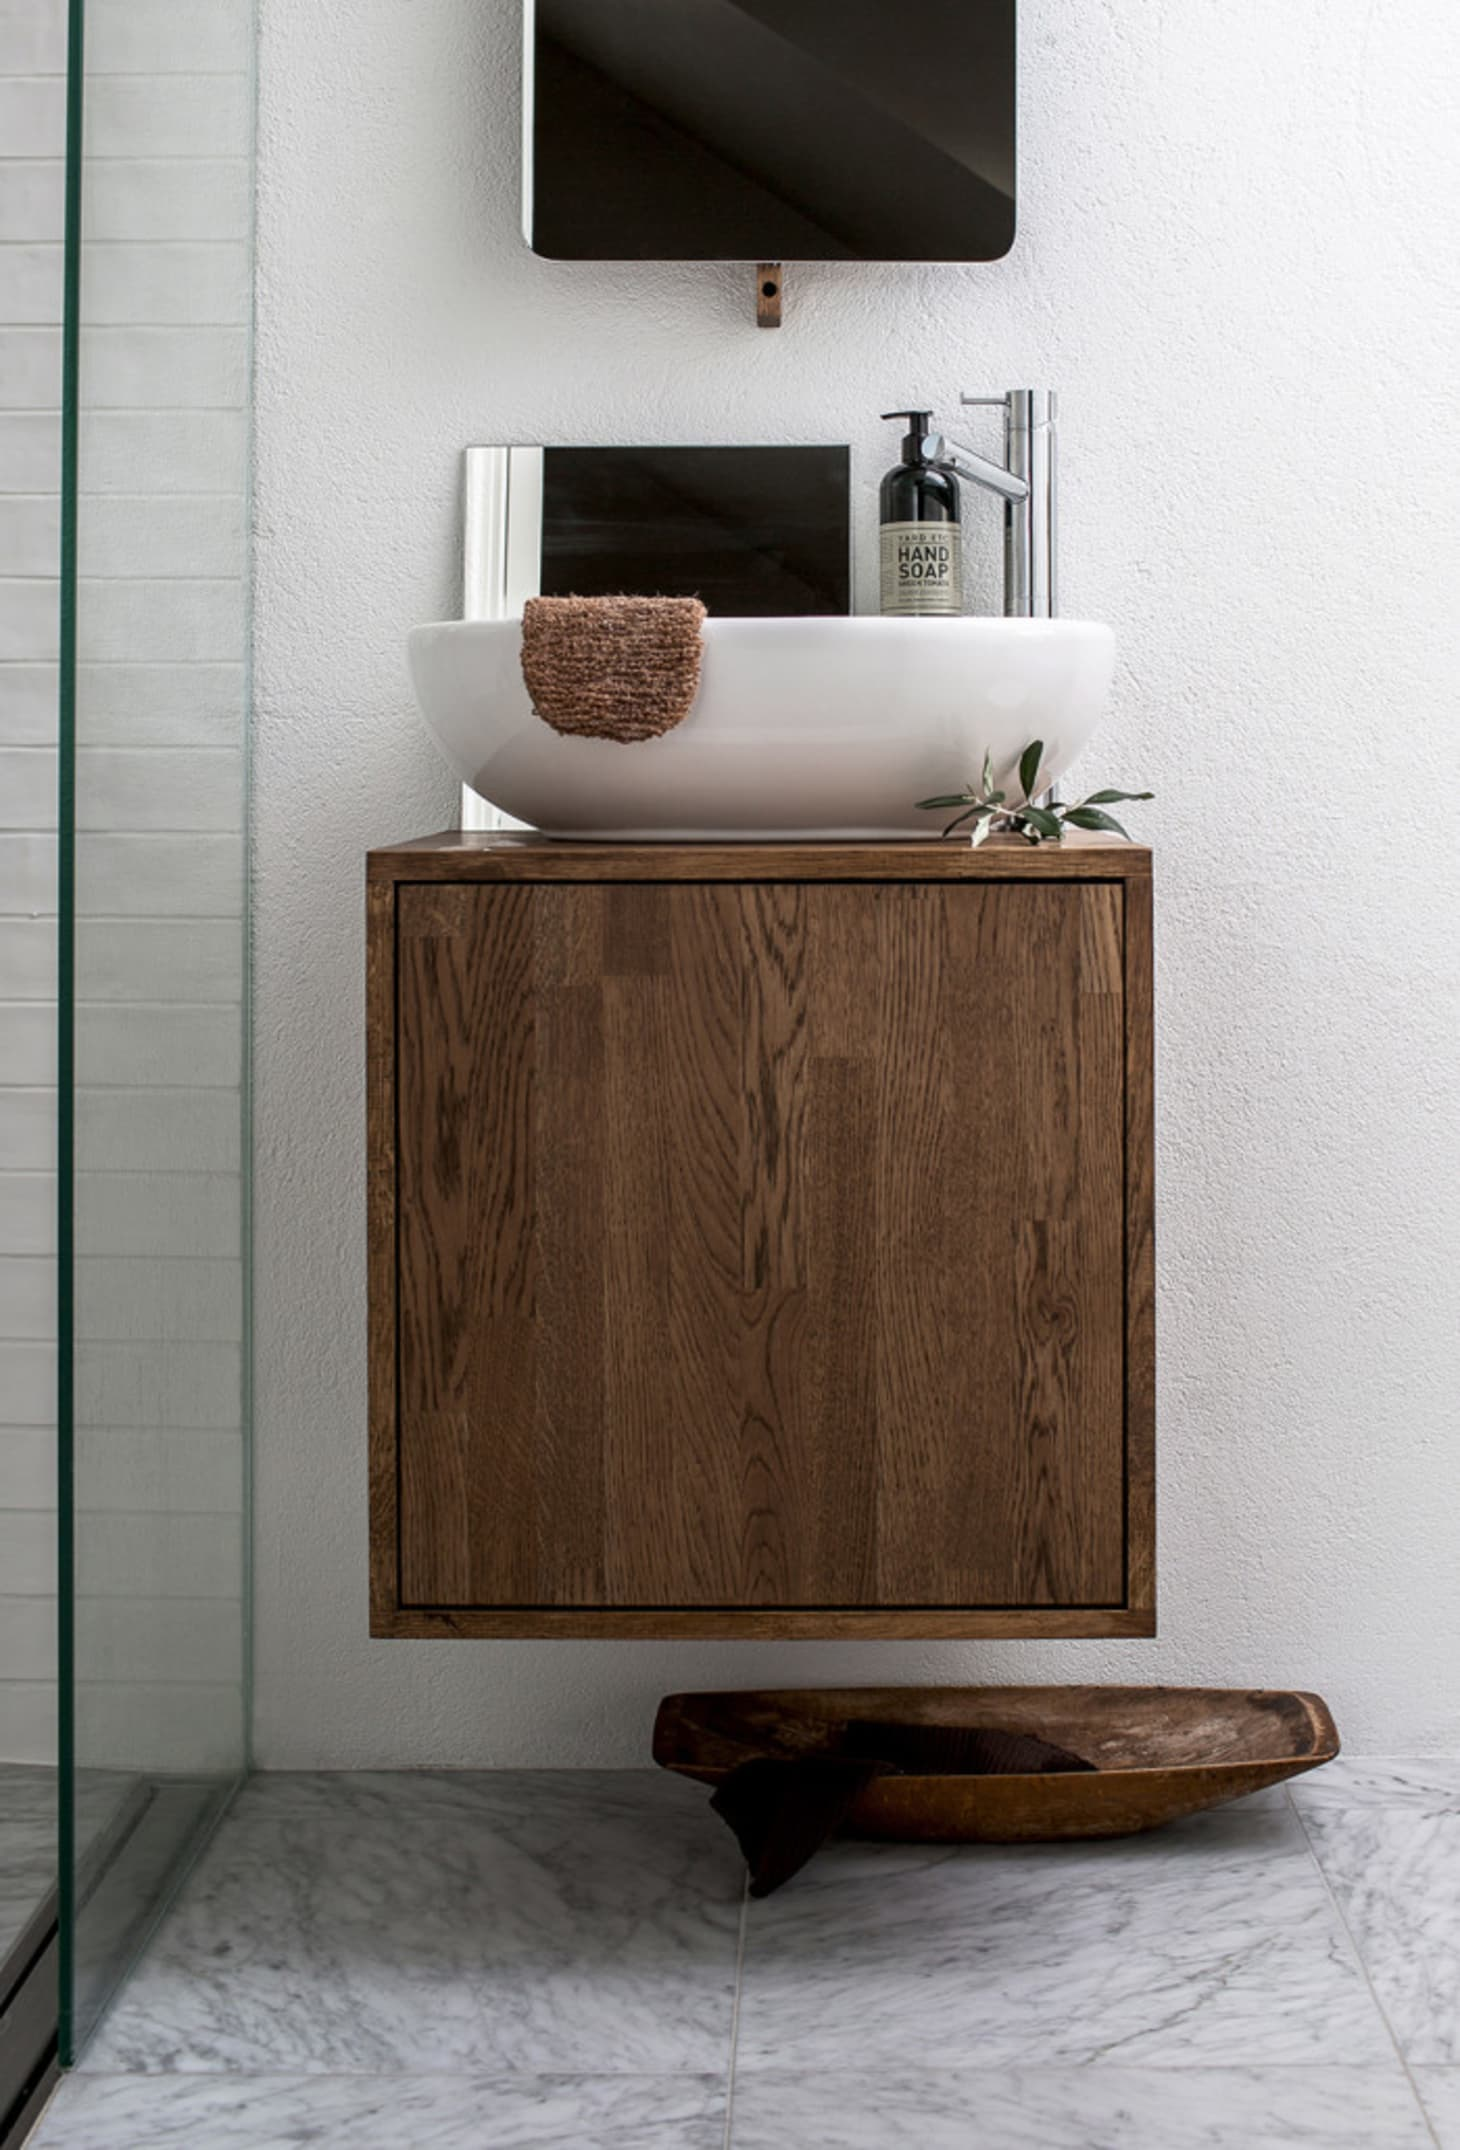 Stylish Remodeling Ideas for Small Bathrooms | Apartment ... on Small Apartment Bathroom Storage Ideas  id=90600